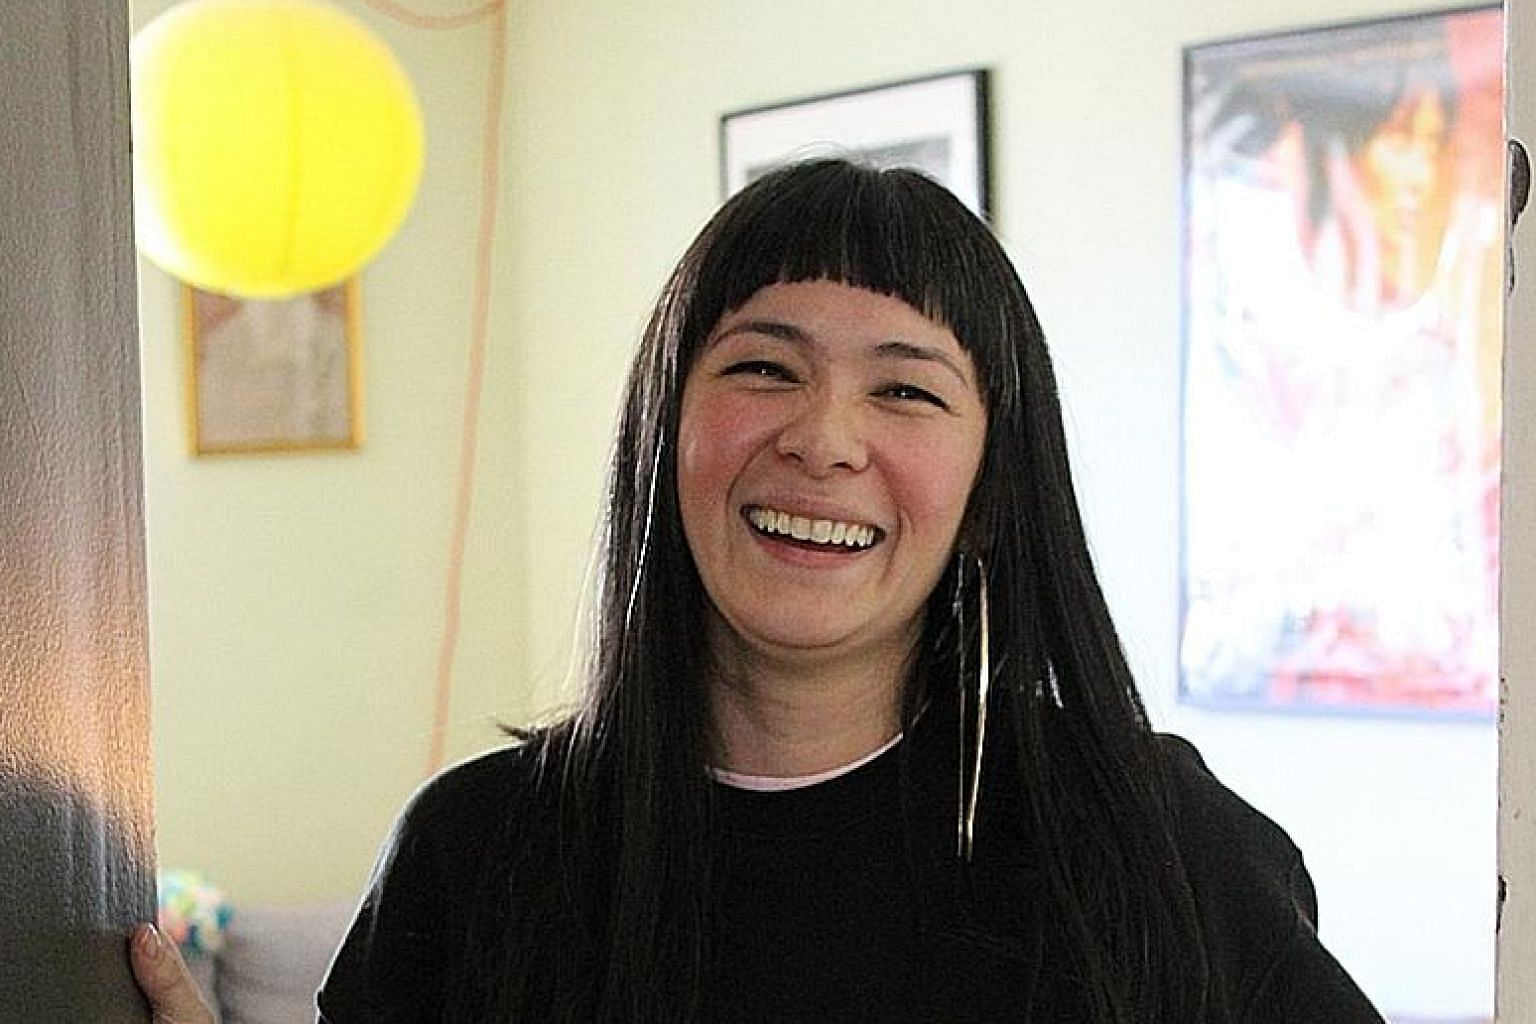 Toronto-based Singapore novelist Thea Lim is on the shortlist of the Scotiabank Giller Prize for her debut novel, An Ocean Of Minutes.